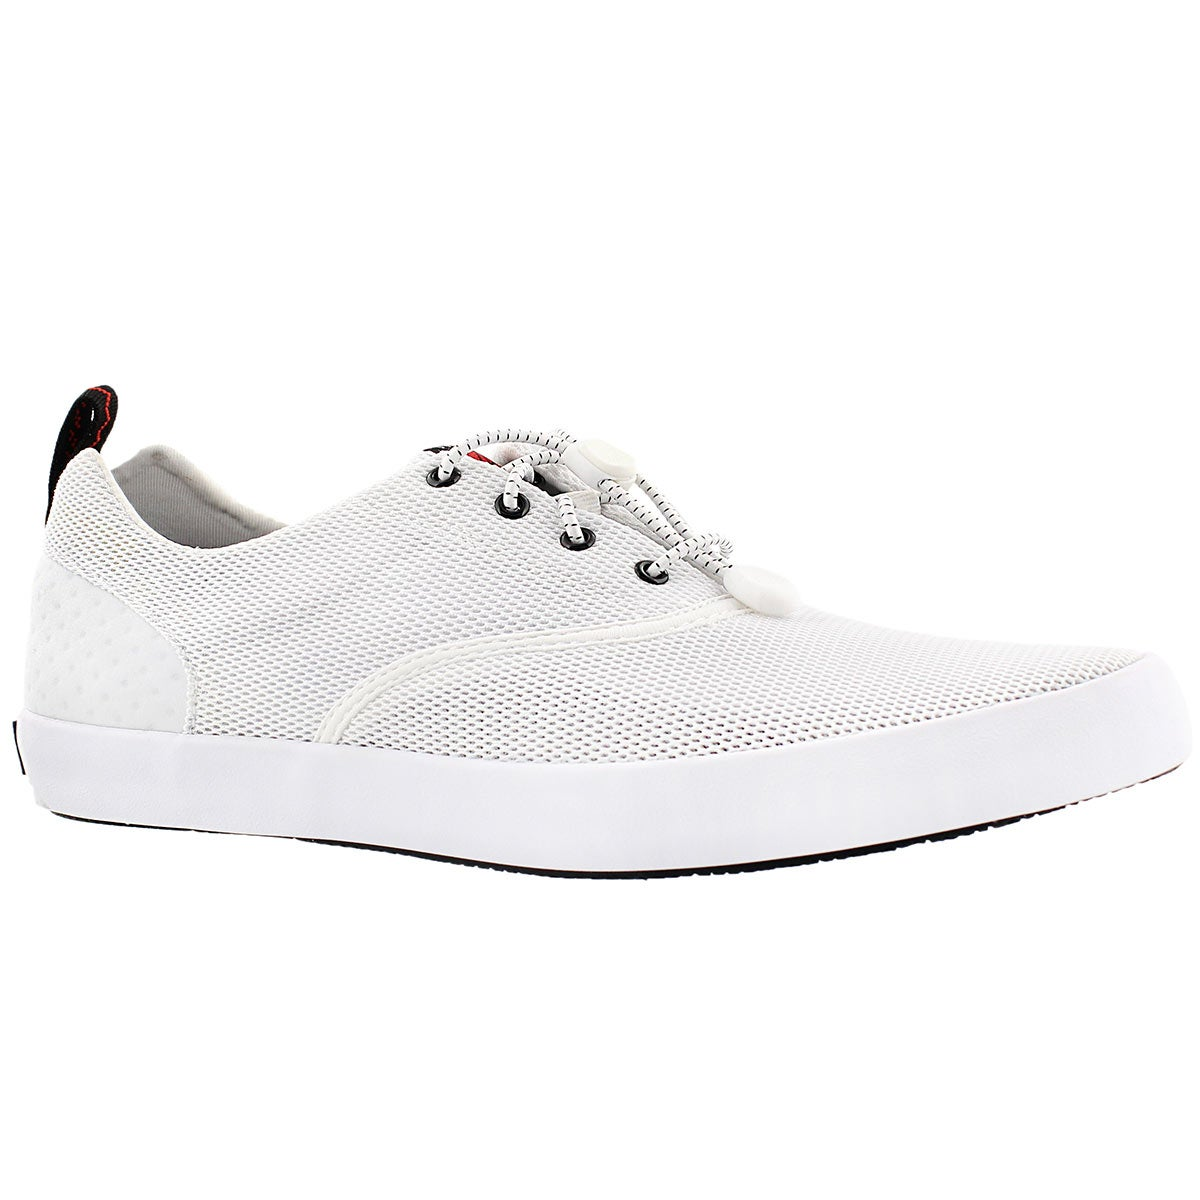 Men's FLEX DECK white CVO sneakers